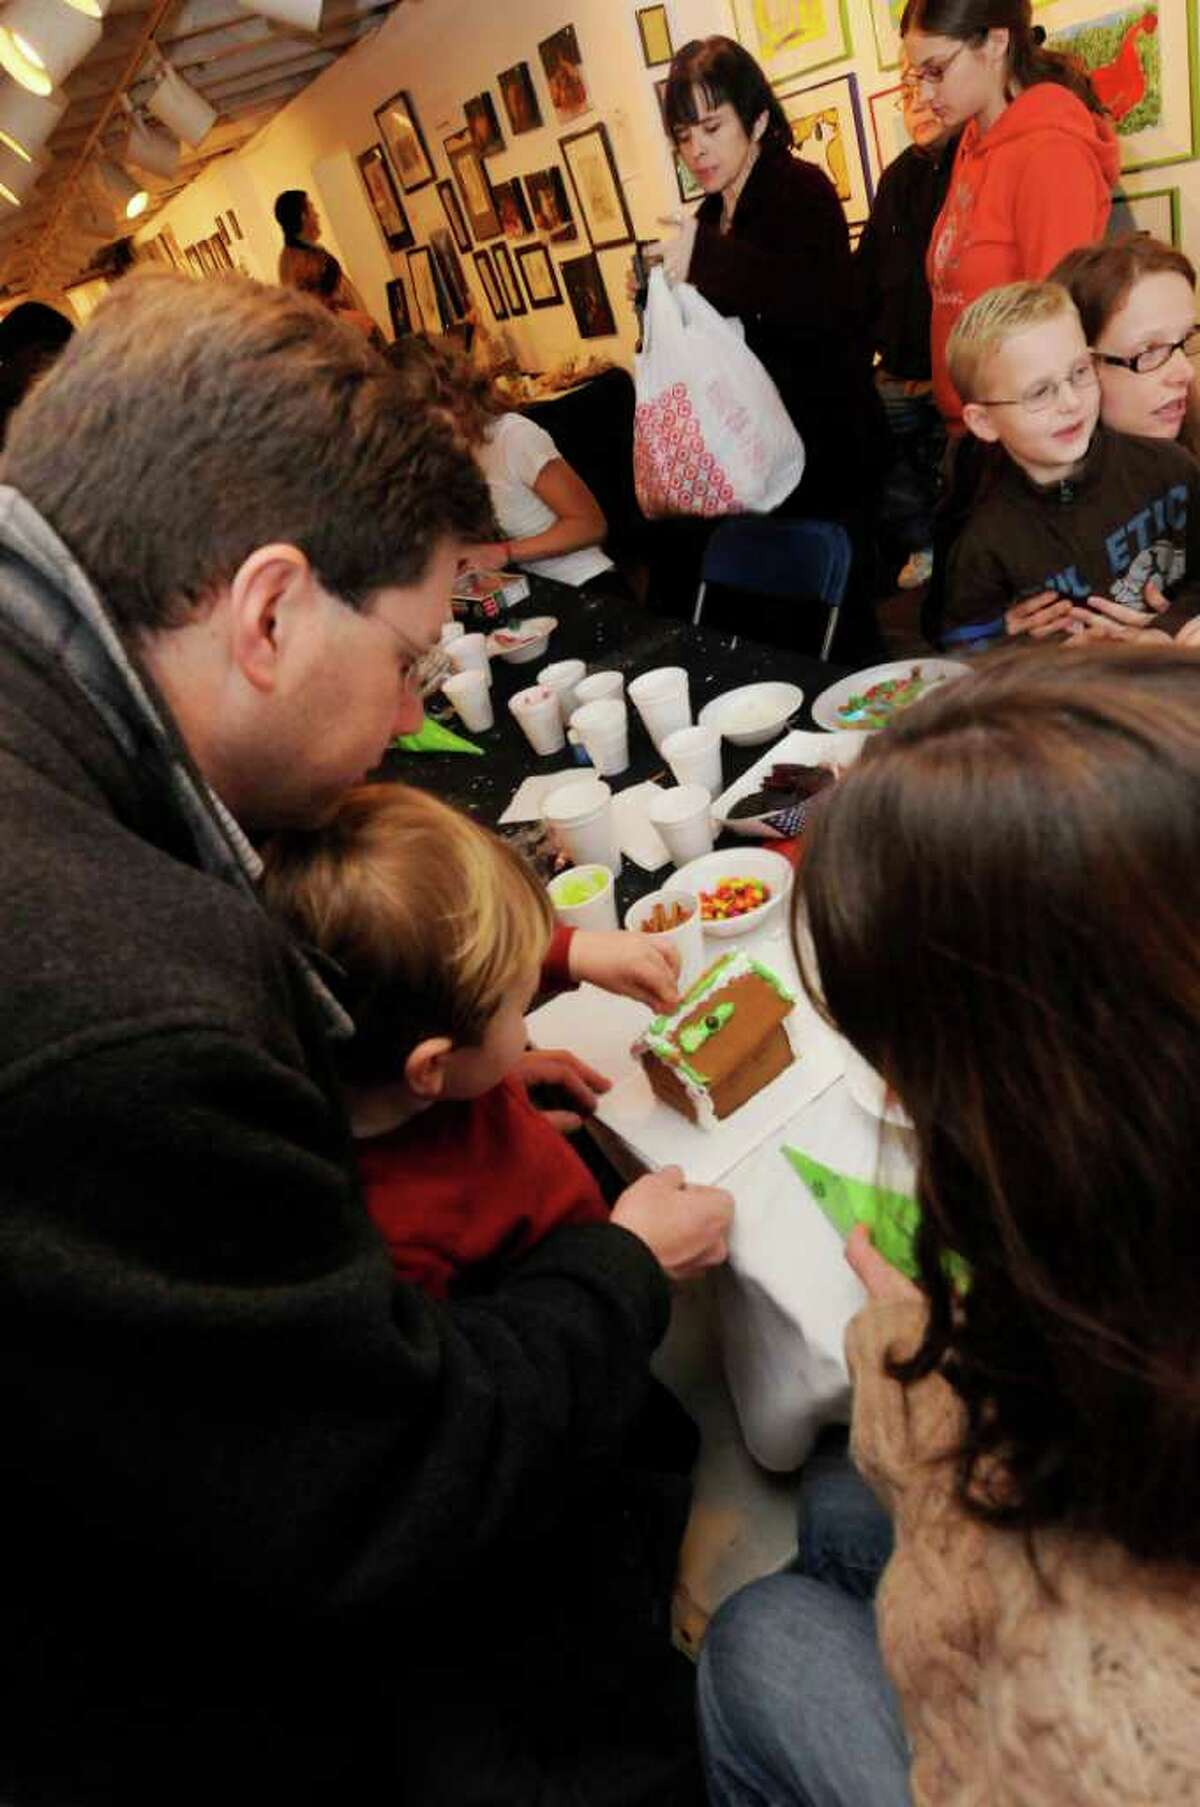 Steve Gagne his wife Kate Molloney and their 3-year-old son Andrew Gagne make gingerbread houses at the Upstate Artist Guild during the annual Winter WonderLark in Albany on Dec. 11. ( Michael P. Farrell/Times Union )